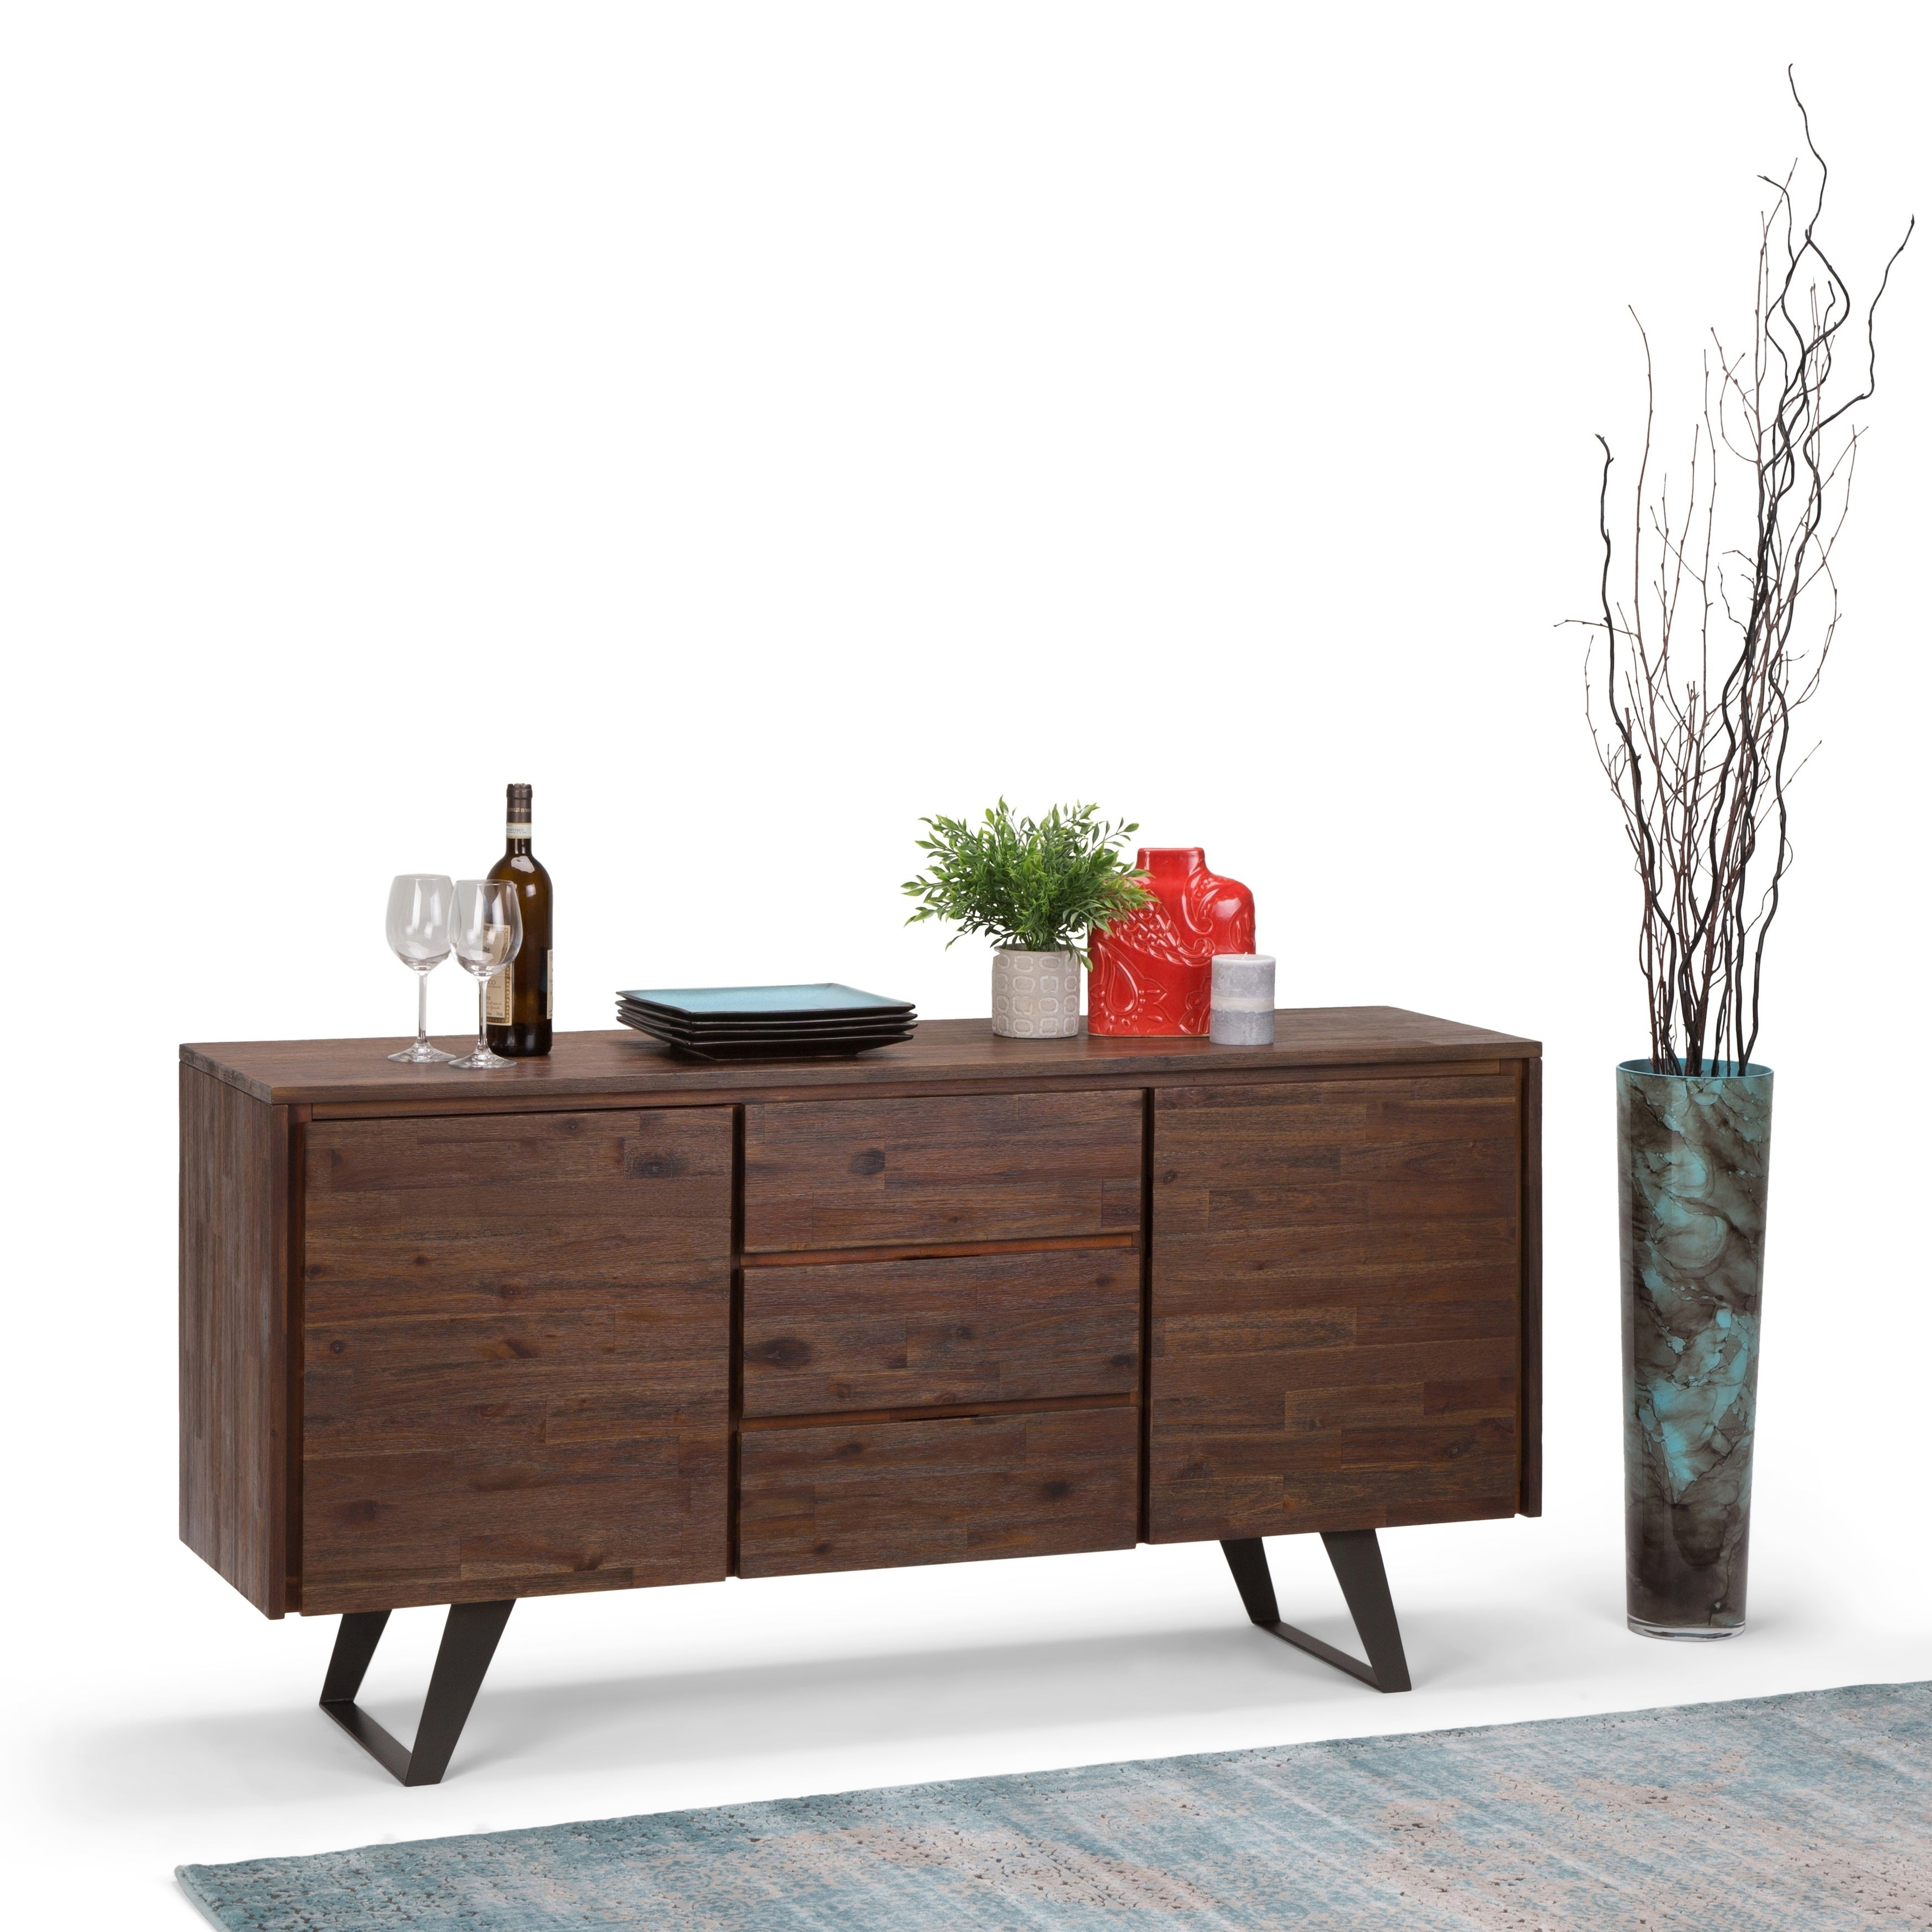 Wyndenhall Mitchell Solid Acacia Wood And Metal 60 Inchwide Modern Industrial Sideboard Buffet In Distressed Charcoal Brown Pertaining To Industrial Style 3 Drawer Buffets (View 30 of 30)